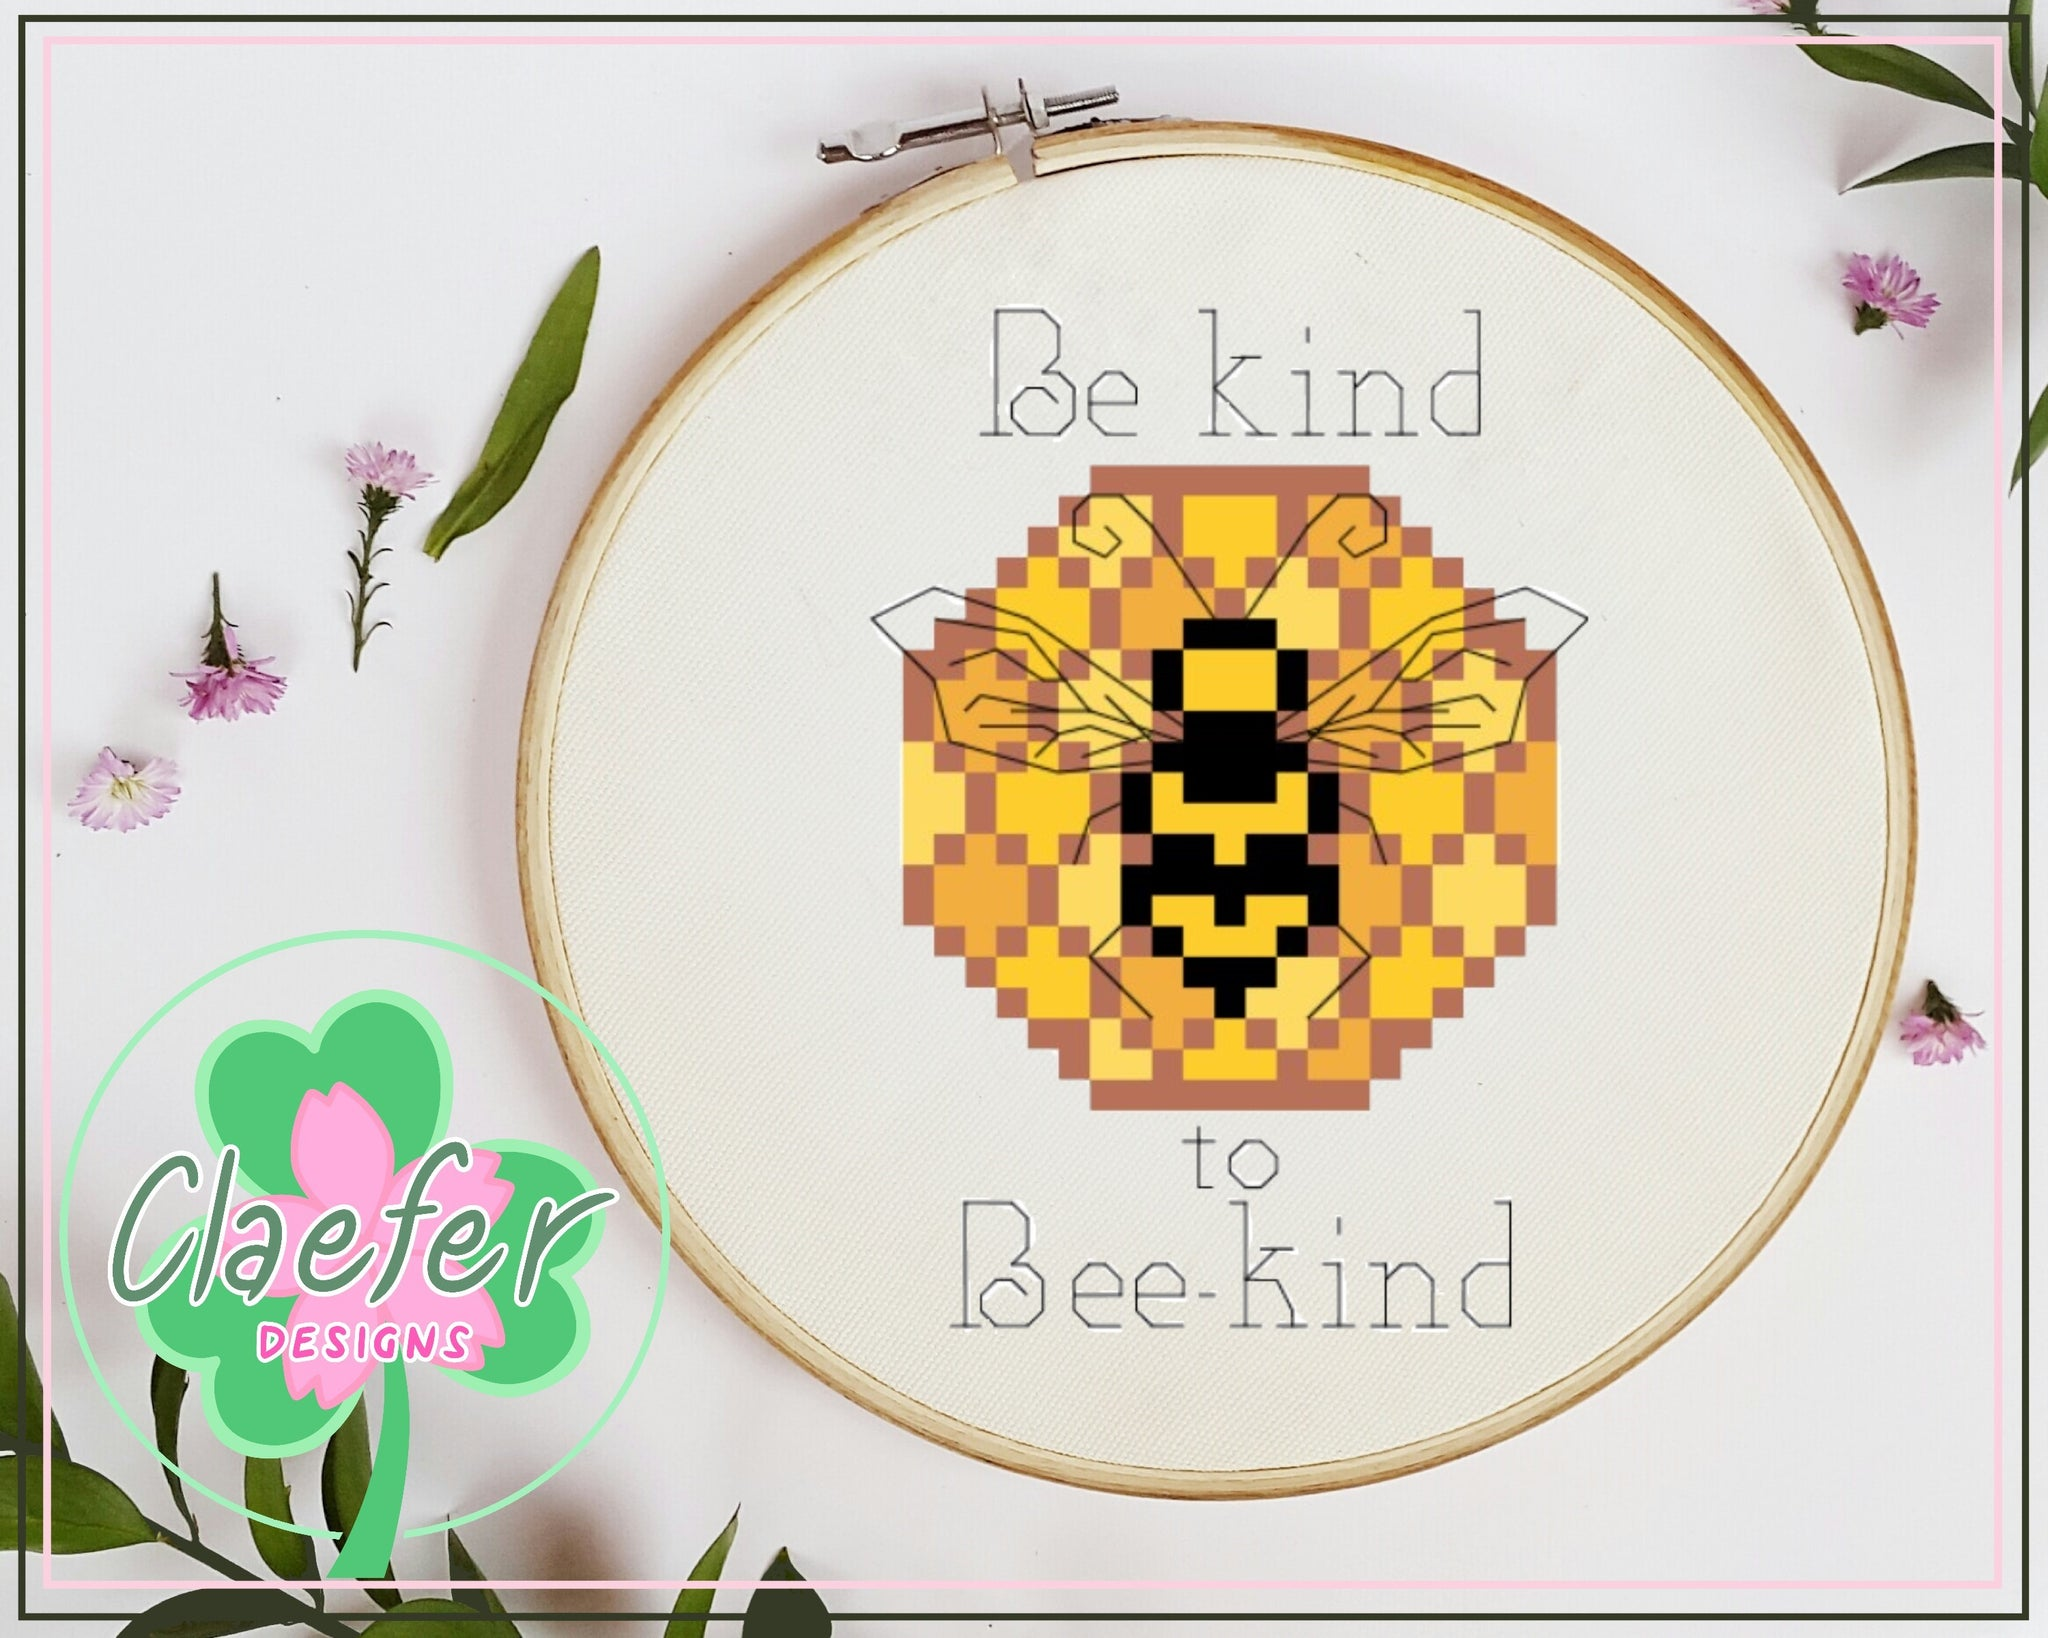 Be kind to Bee-kind - Bee friendly cross stitch pattern